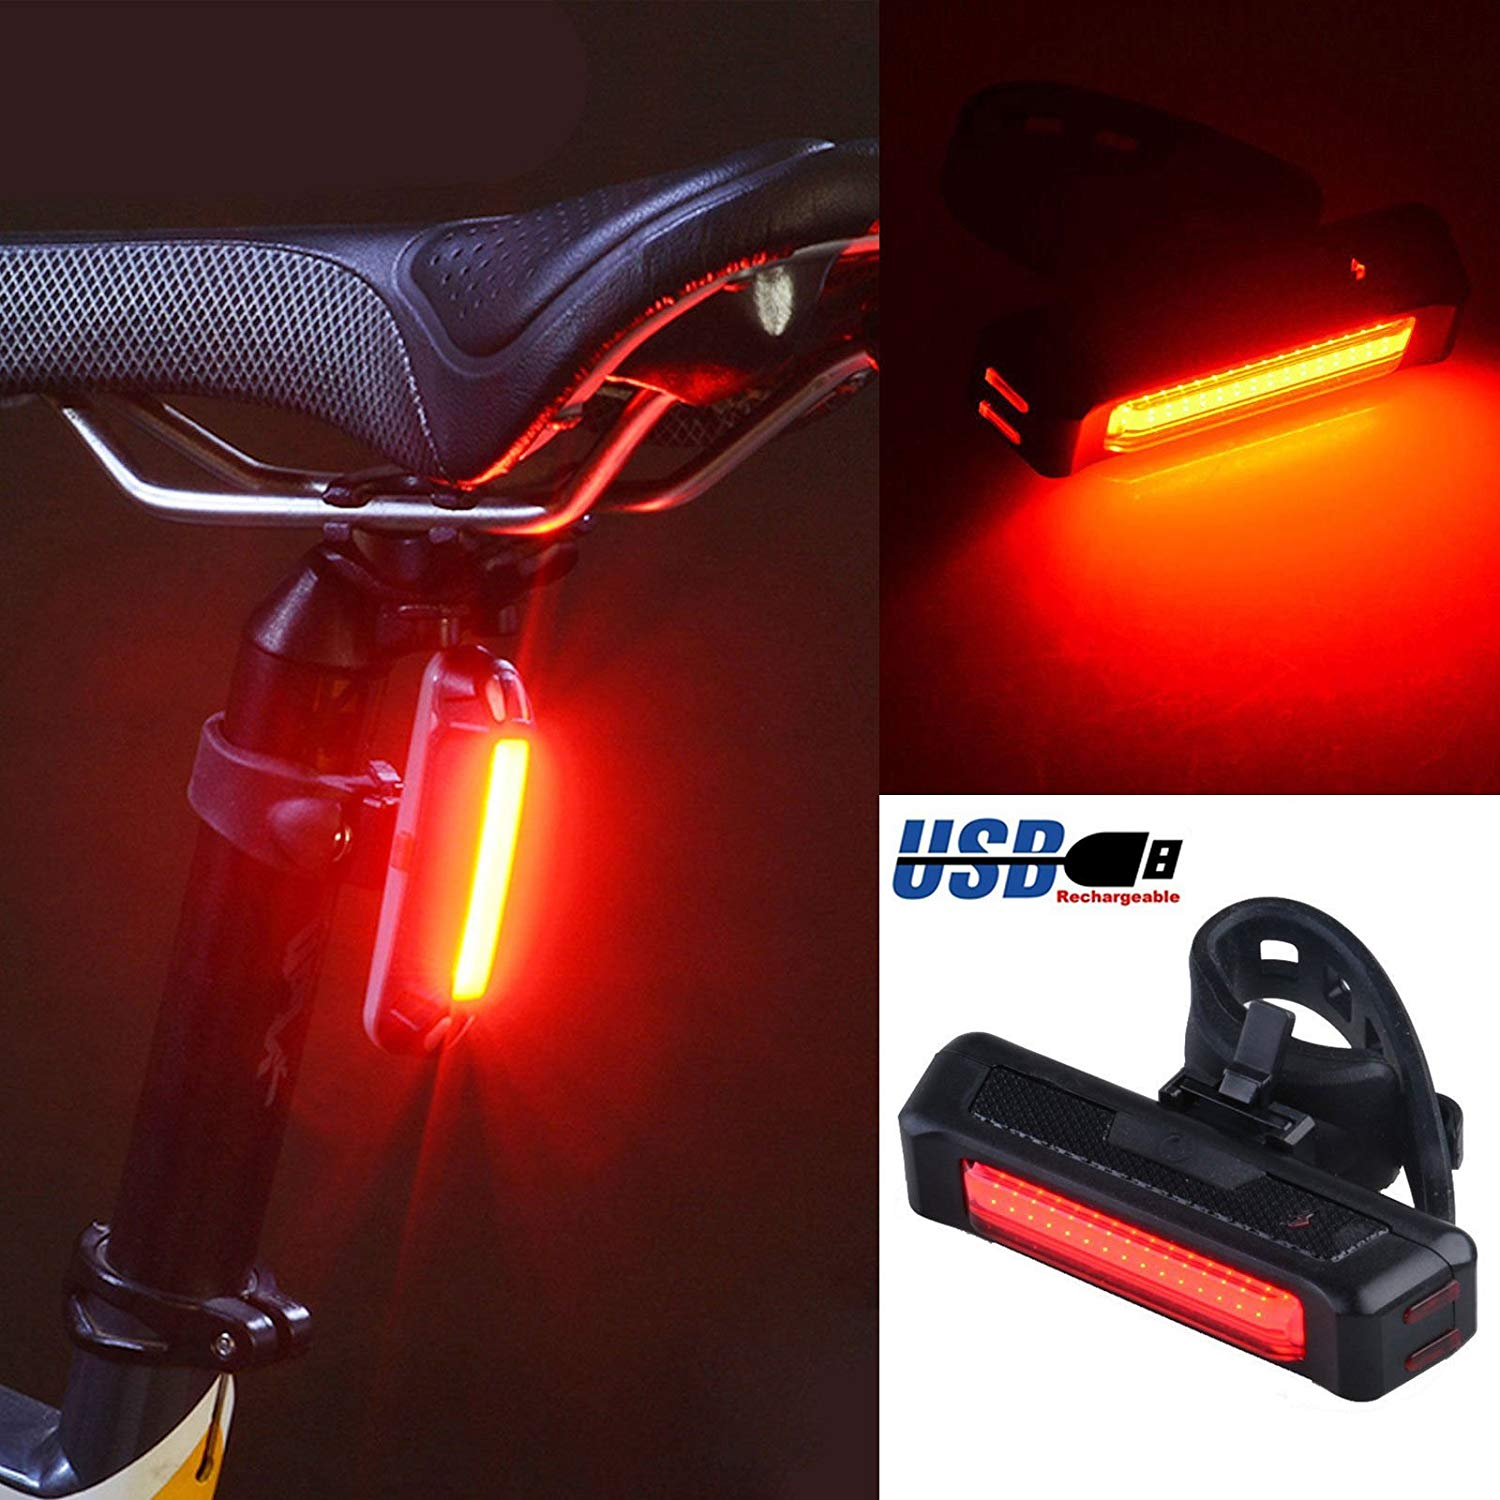 LinkStyle Rechargeable LED Bike Tail Light COB LED Bicycle Bike Light, 6 Modes & USB Charging Cycling Front Rear Tail Light - Red